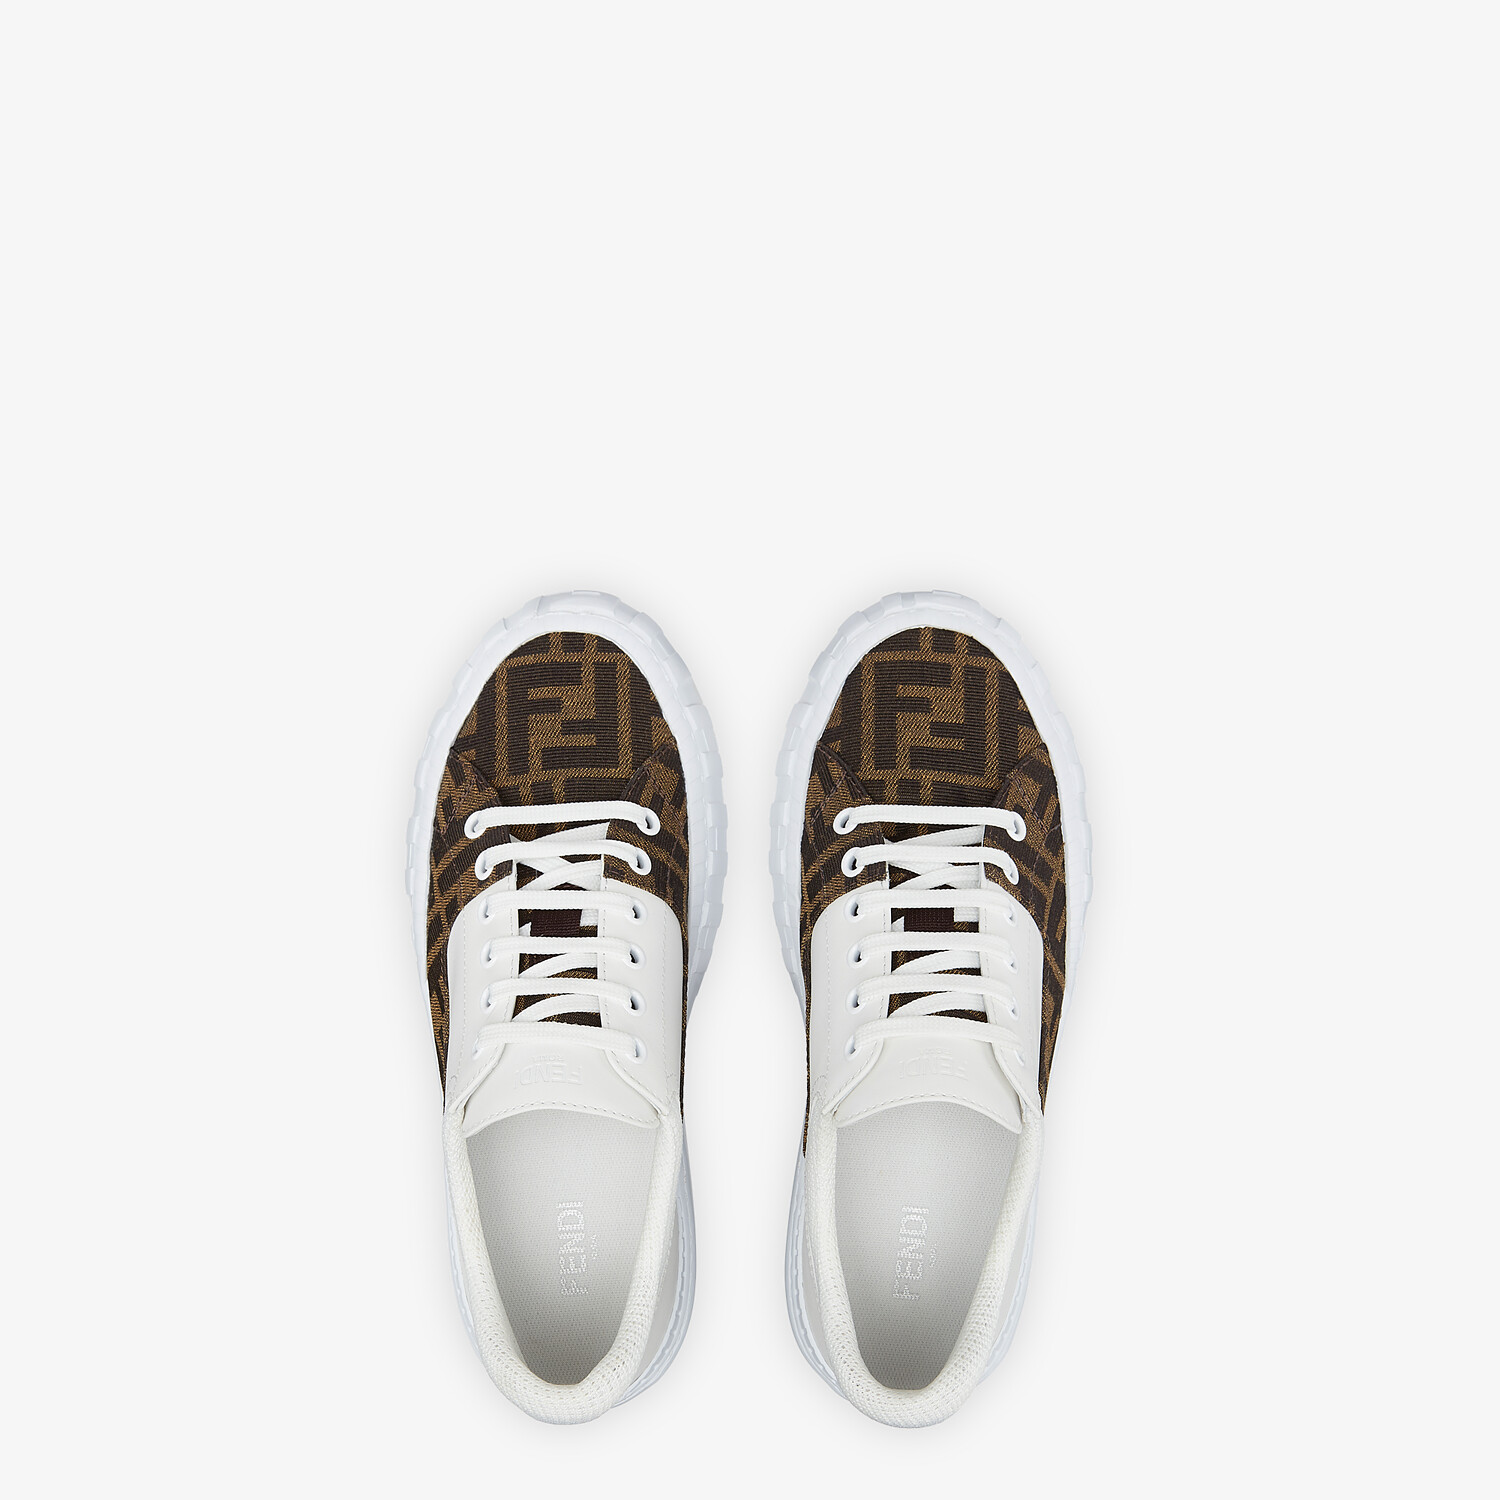 FENDI FENDI FORCE - Brown fabric and leather low tops - view 4 detail